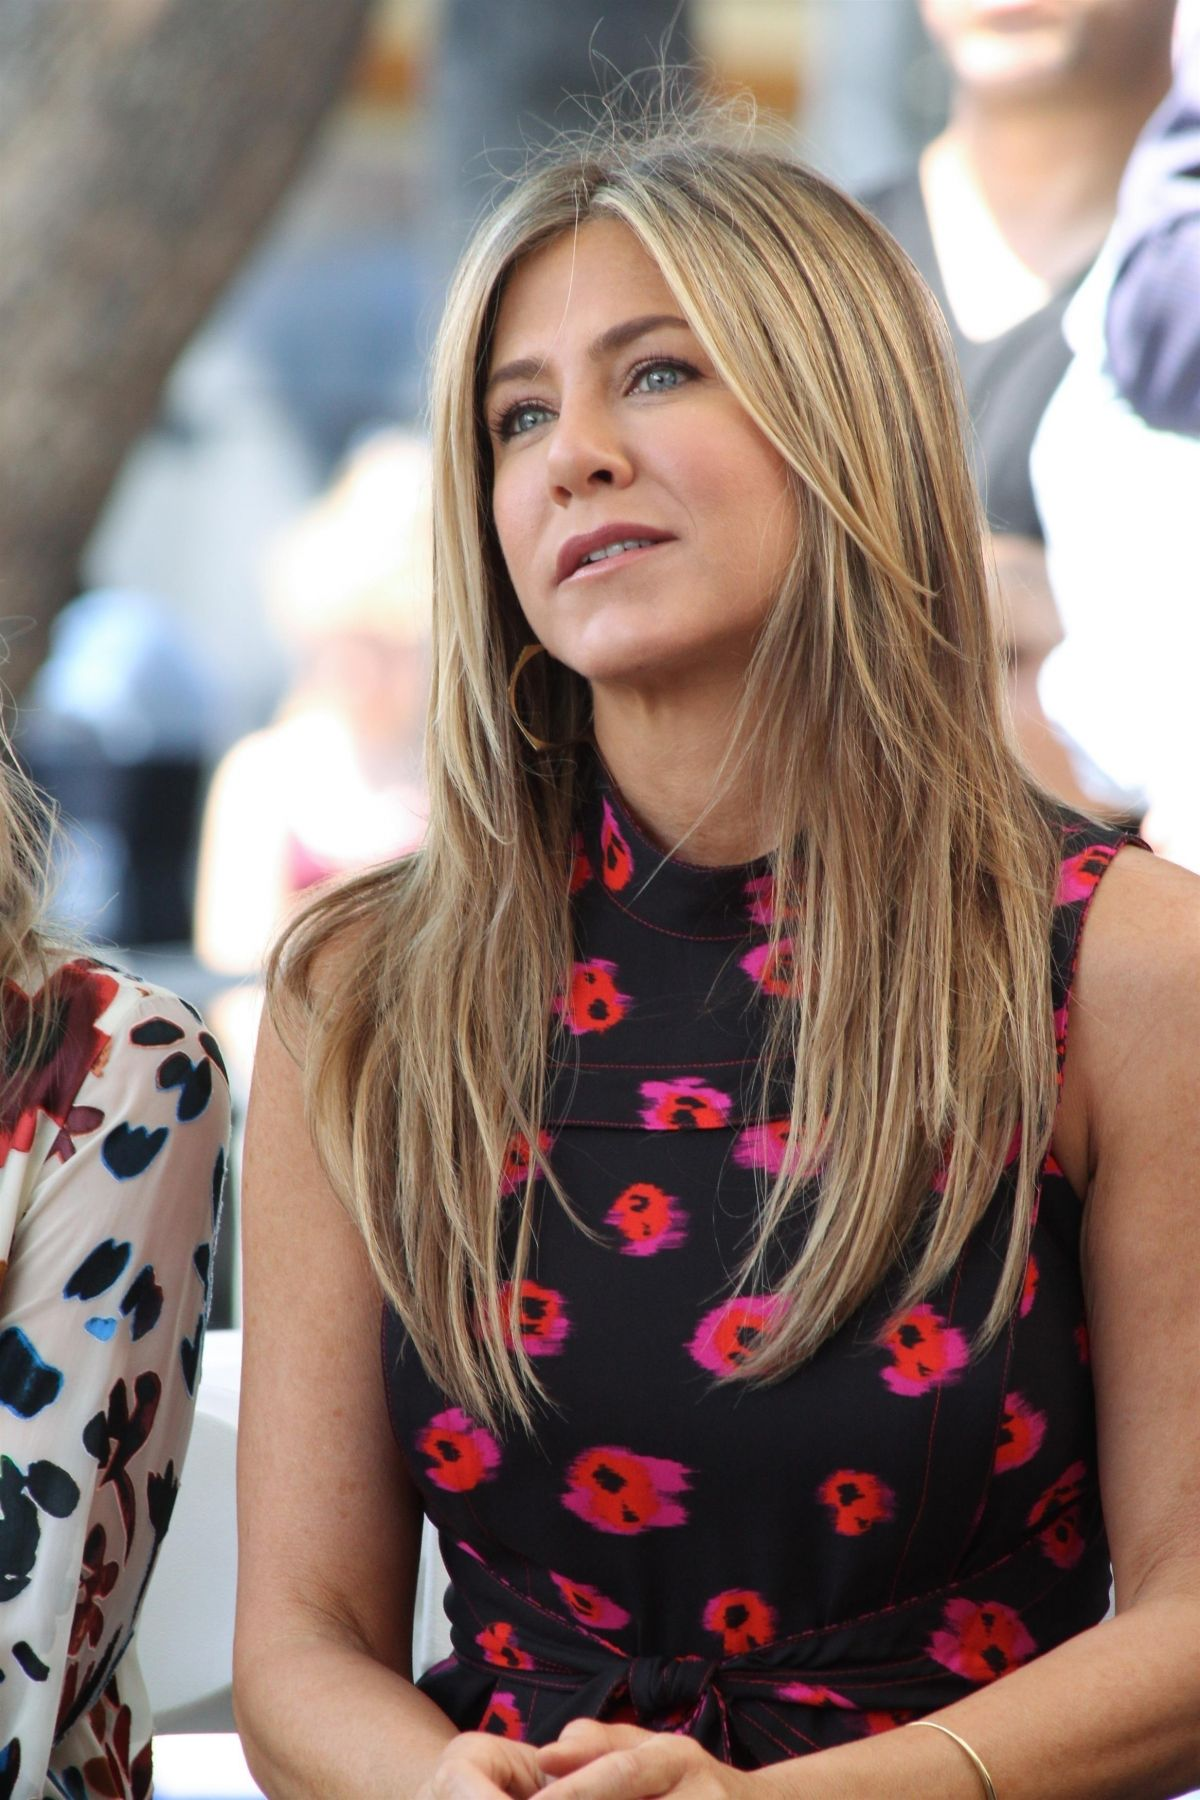 Jennifer Aniston At Jason Bateman's Hollywood Star Ceremony in Hollywood   jennifer-aniston-at-jason-bateman-s-hollywood-star-ceremony-in-hollywood_5